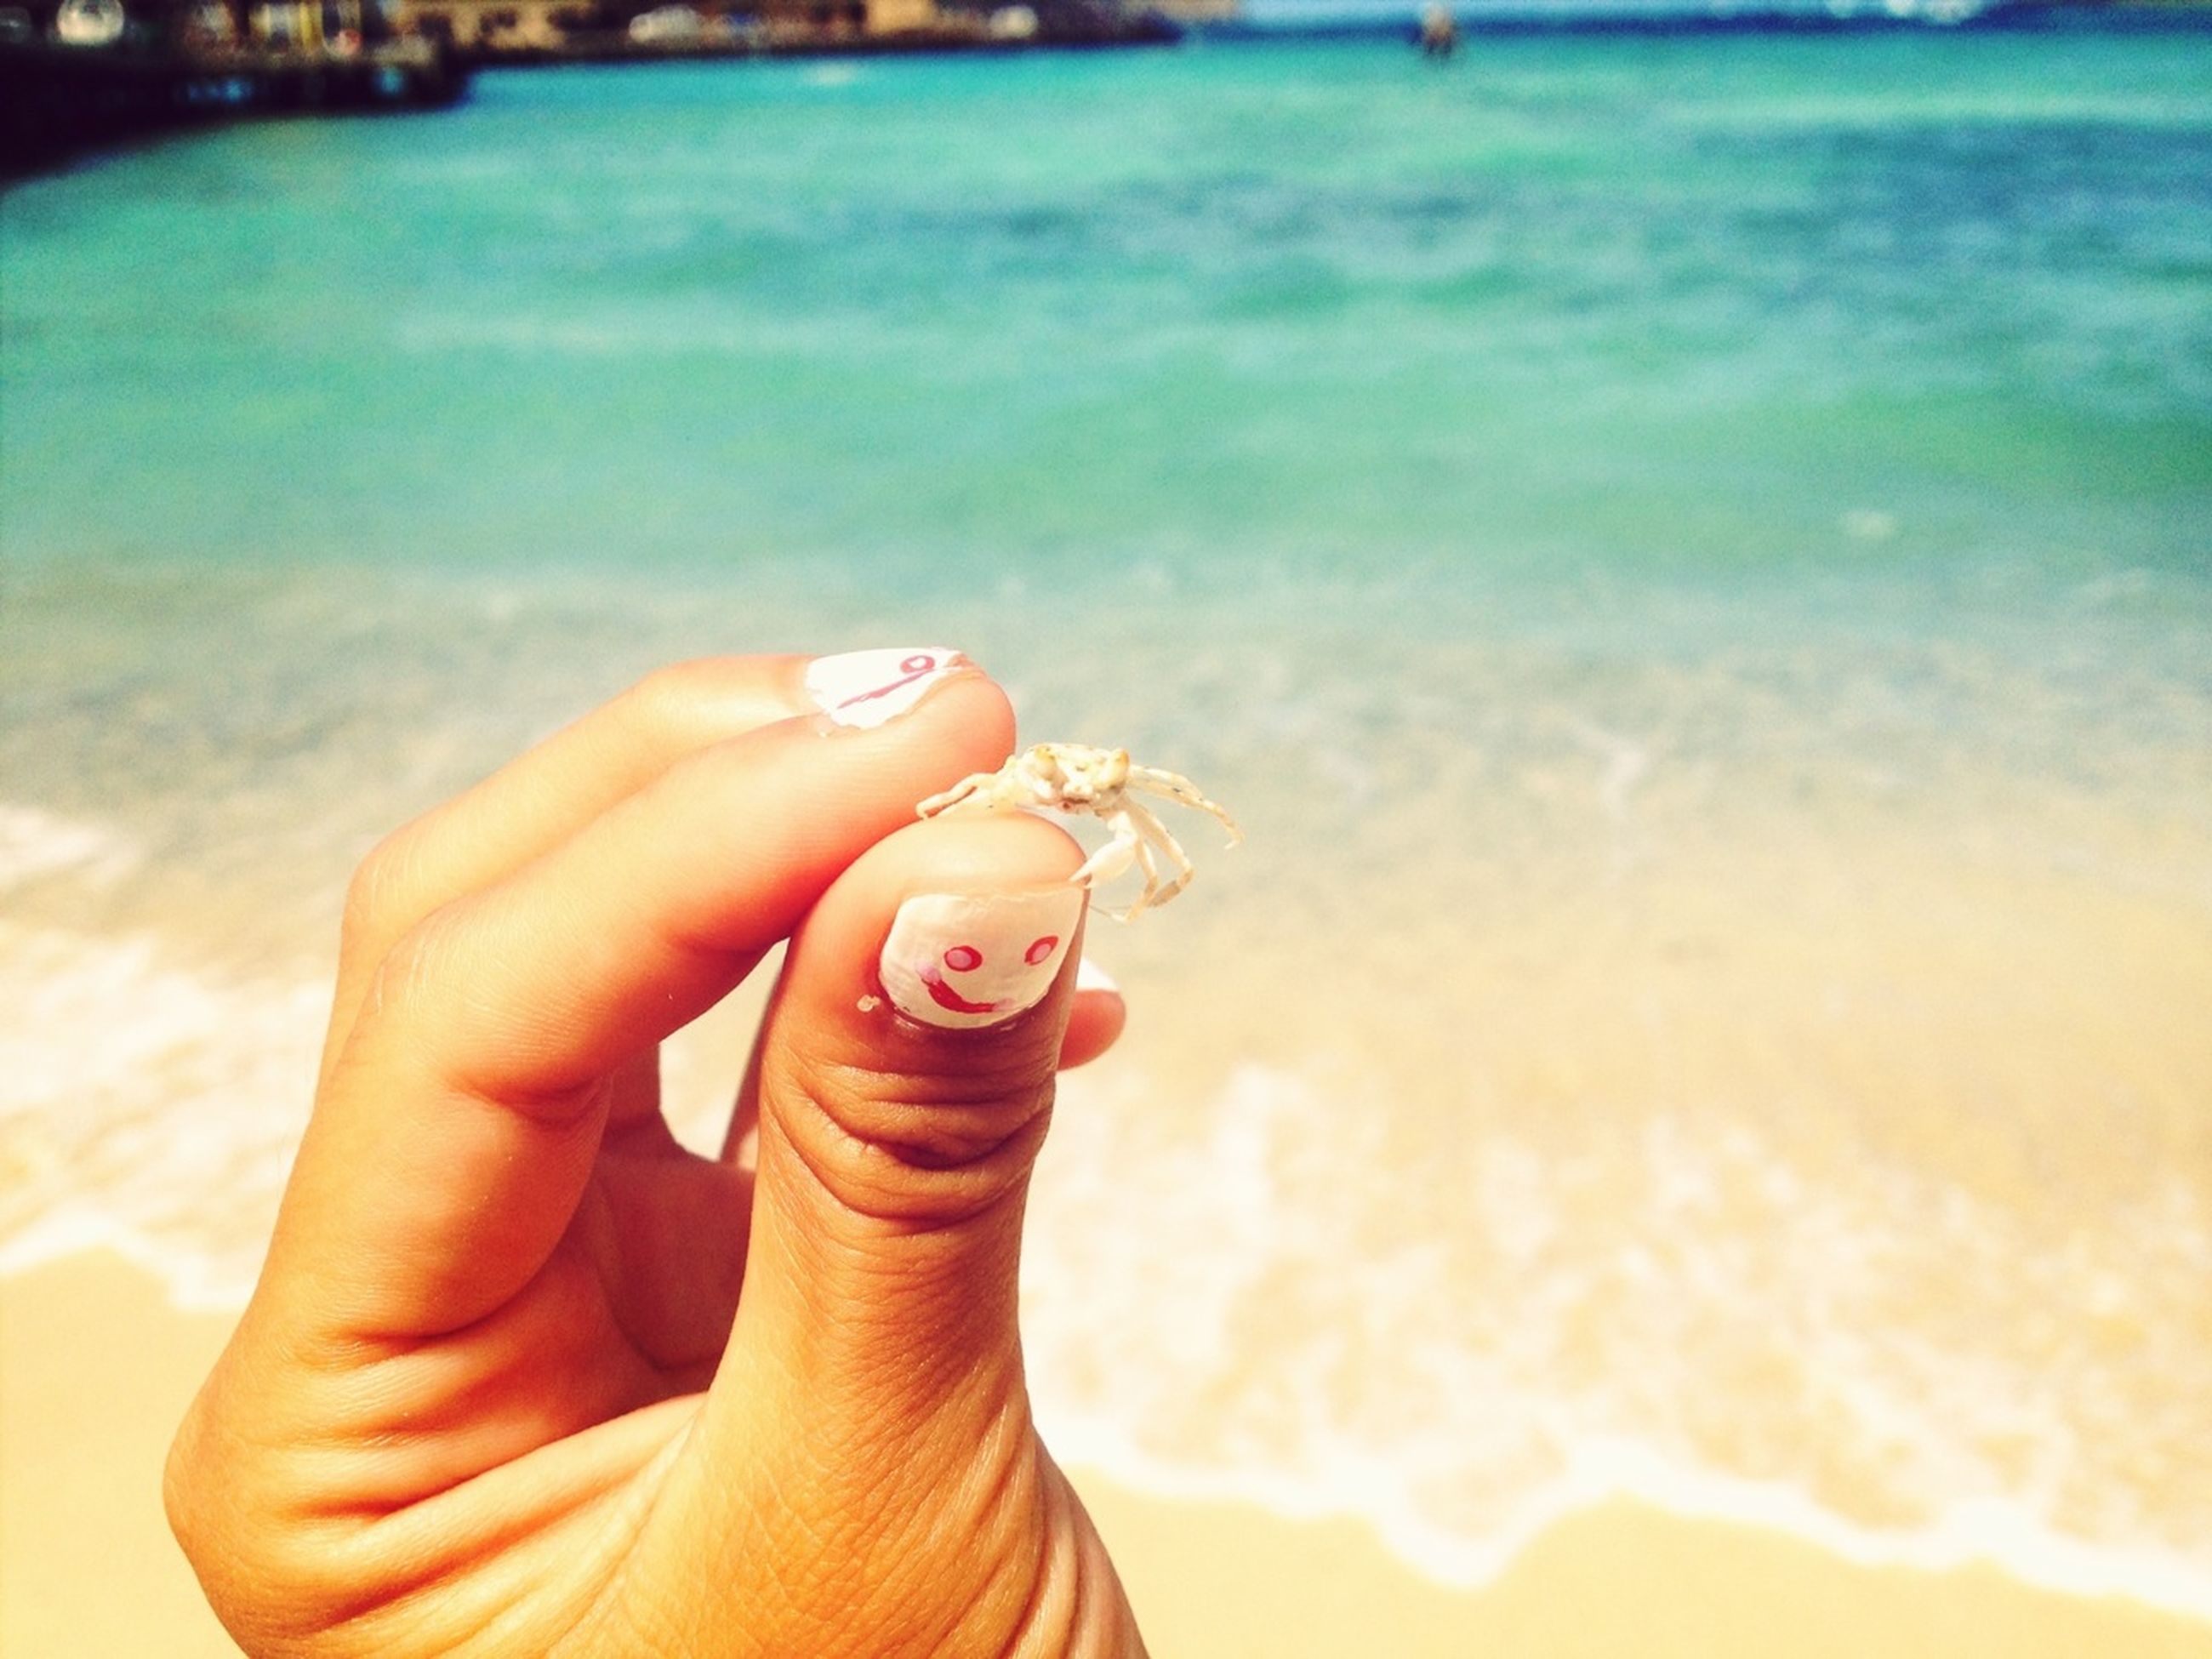 water, sea, beach, lifestyles, person, leisure activity, focus on foreground, part of, vacations, holding, shore, close-up, sand, cropped, outdoors, refreshment